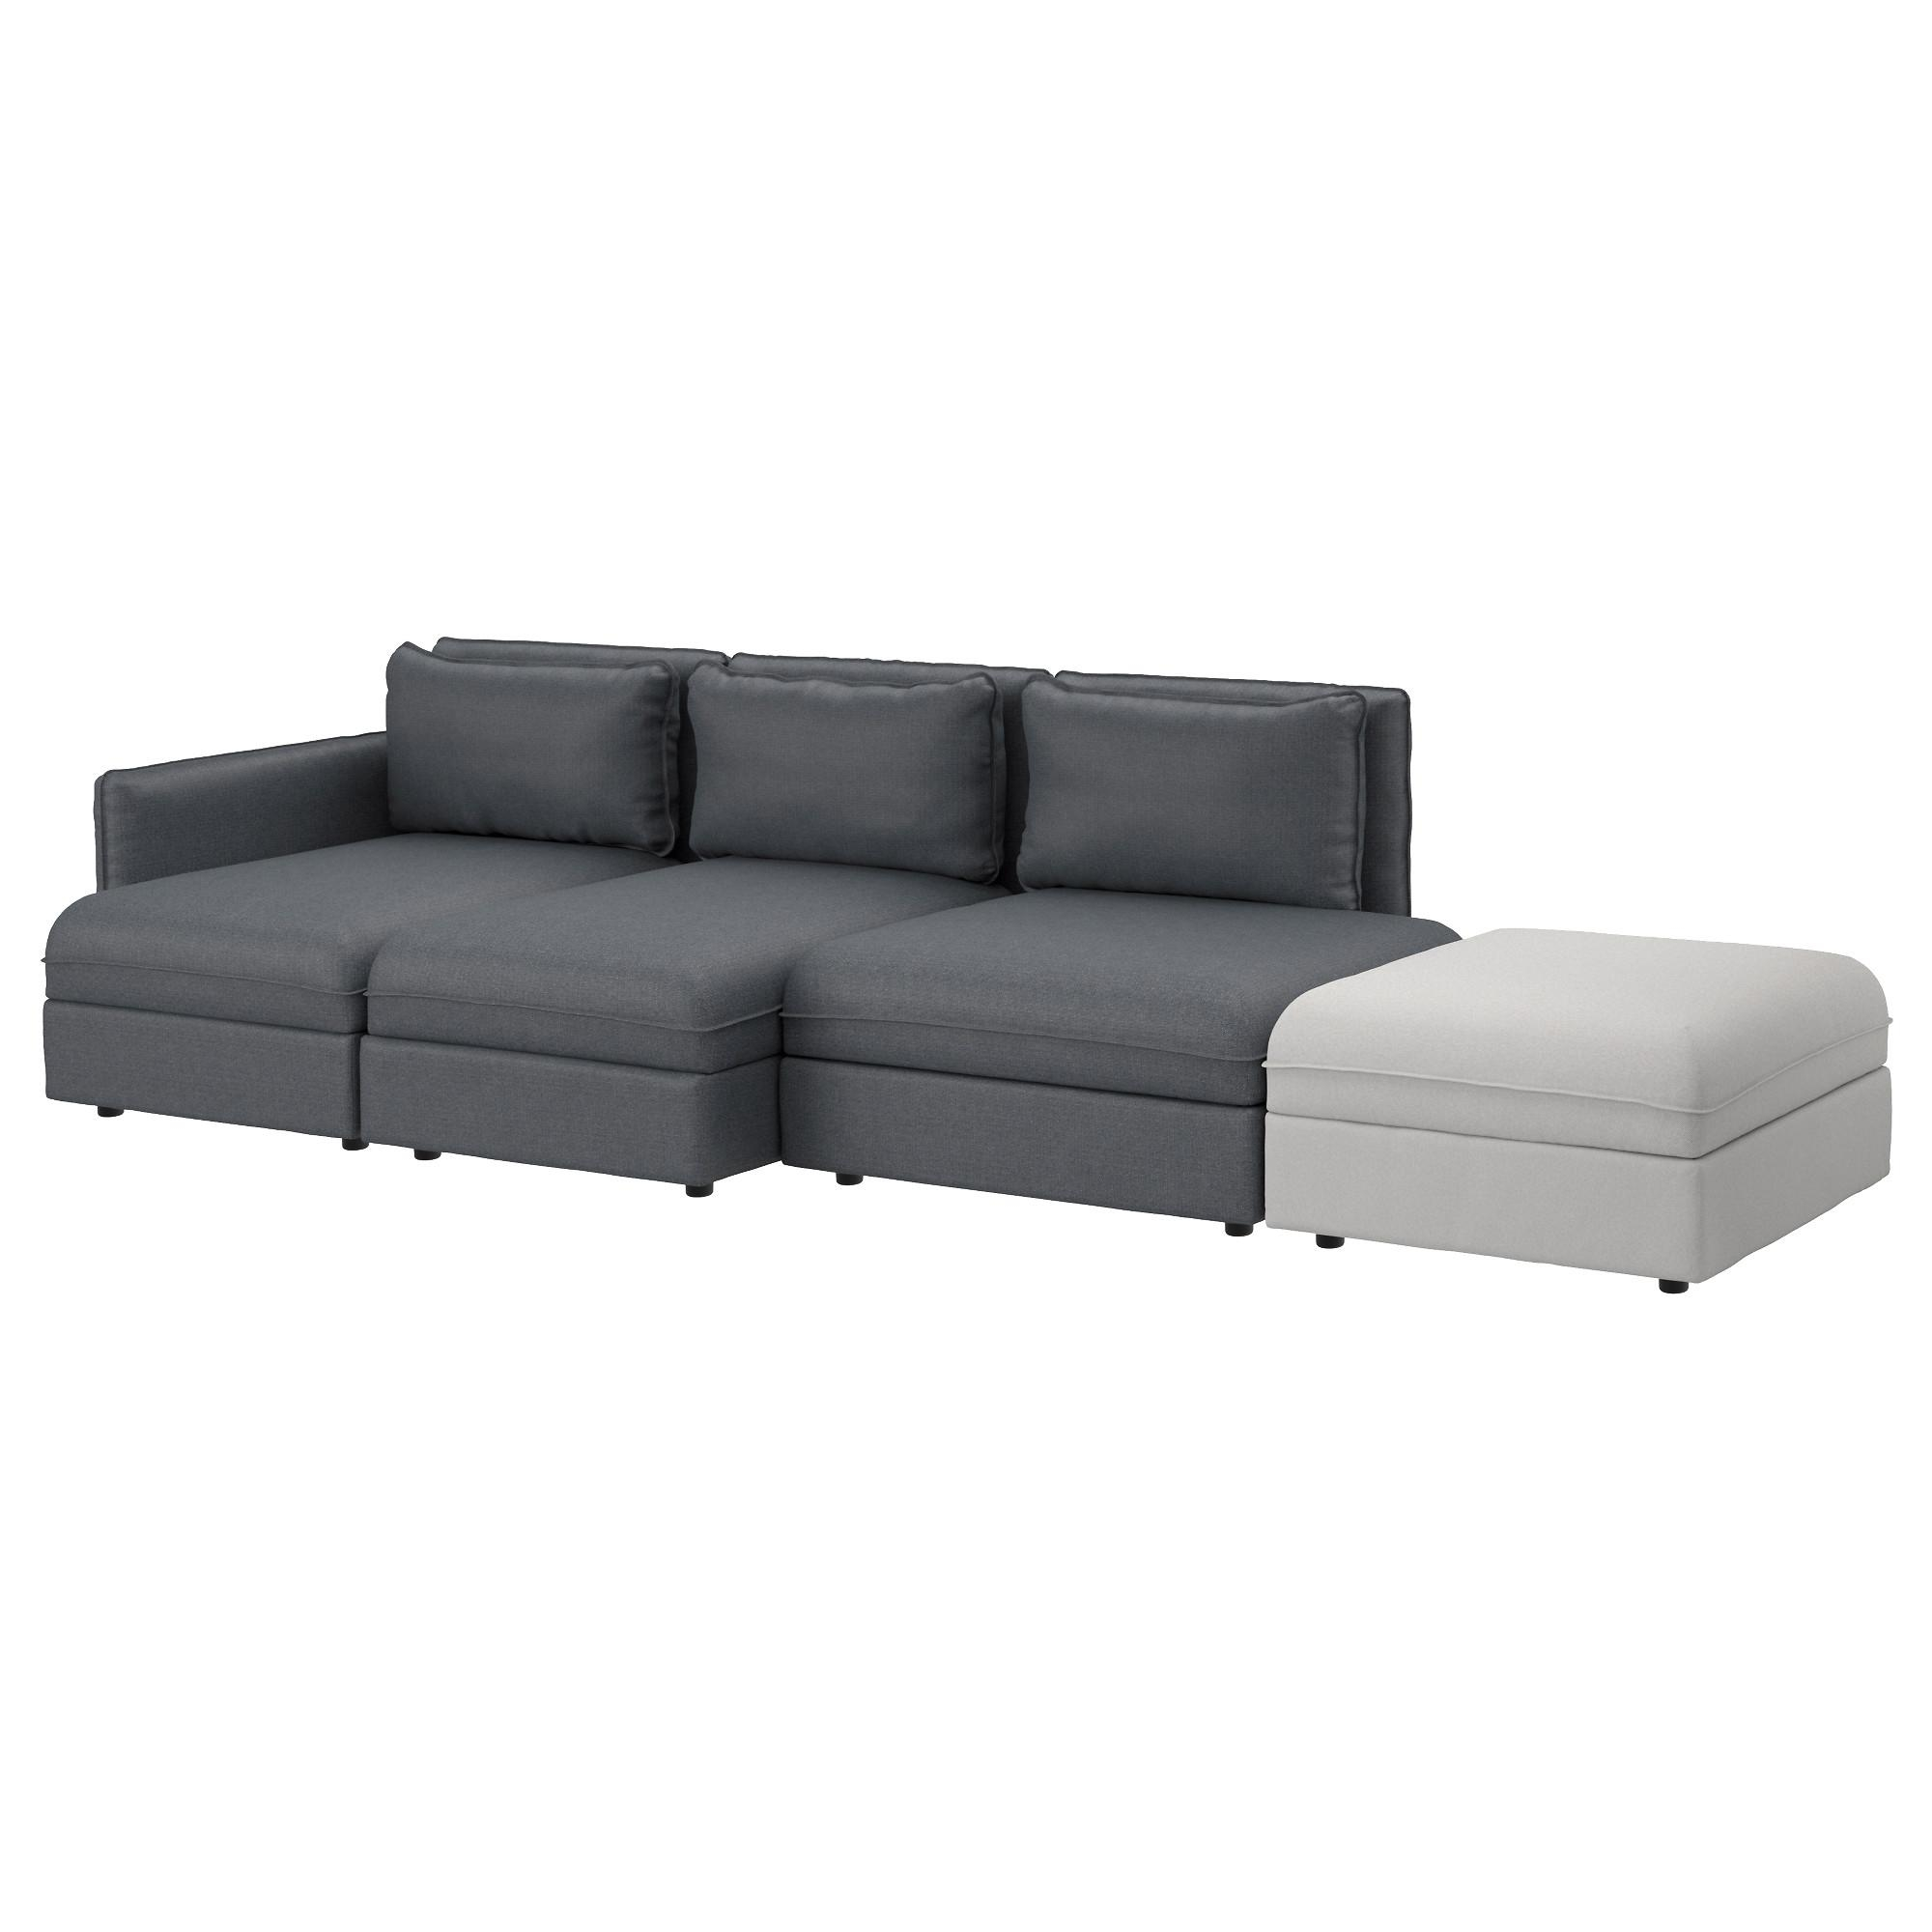 Sectional Sofas & Couches – Ikea With Charcoal Grey Leather Sofas (View 20 of 20)